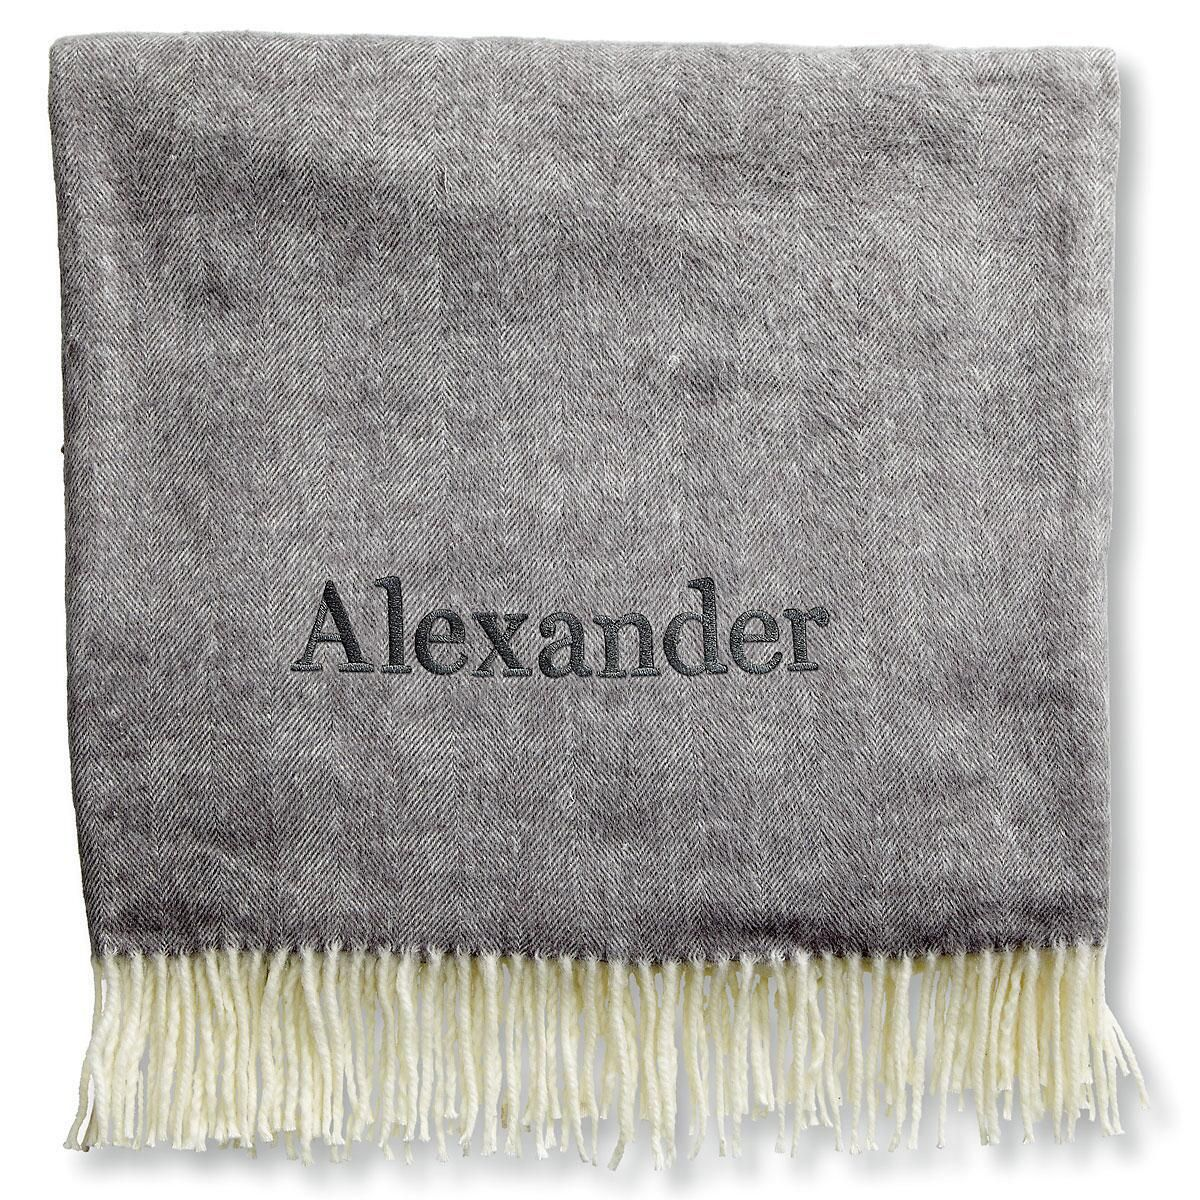 Personalized Blanket with Name